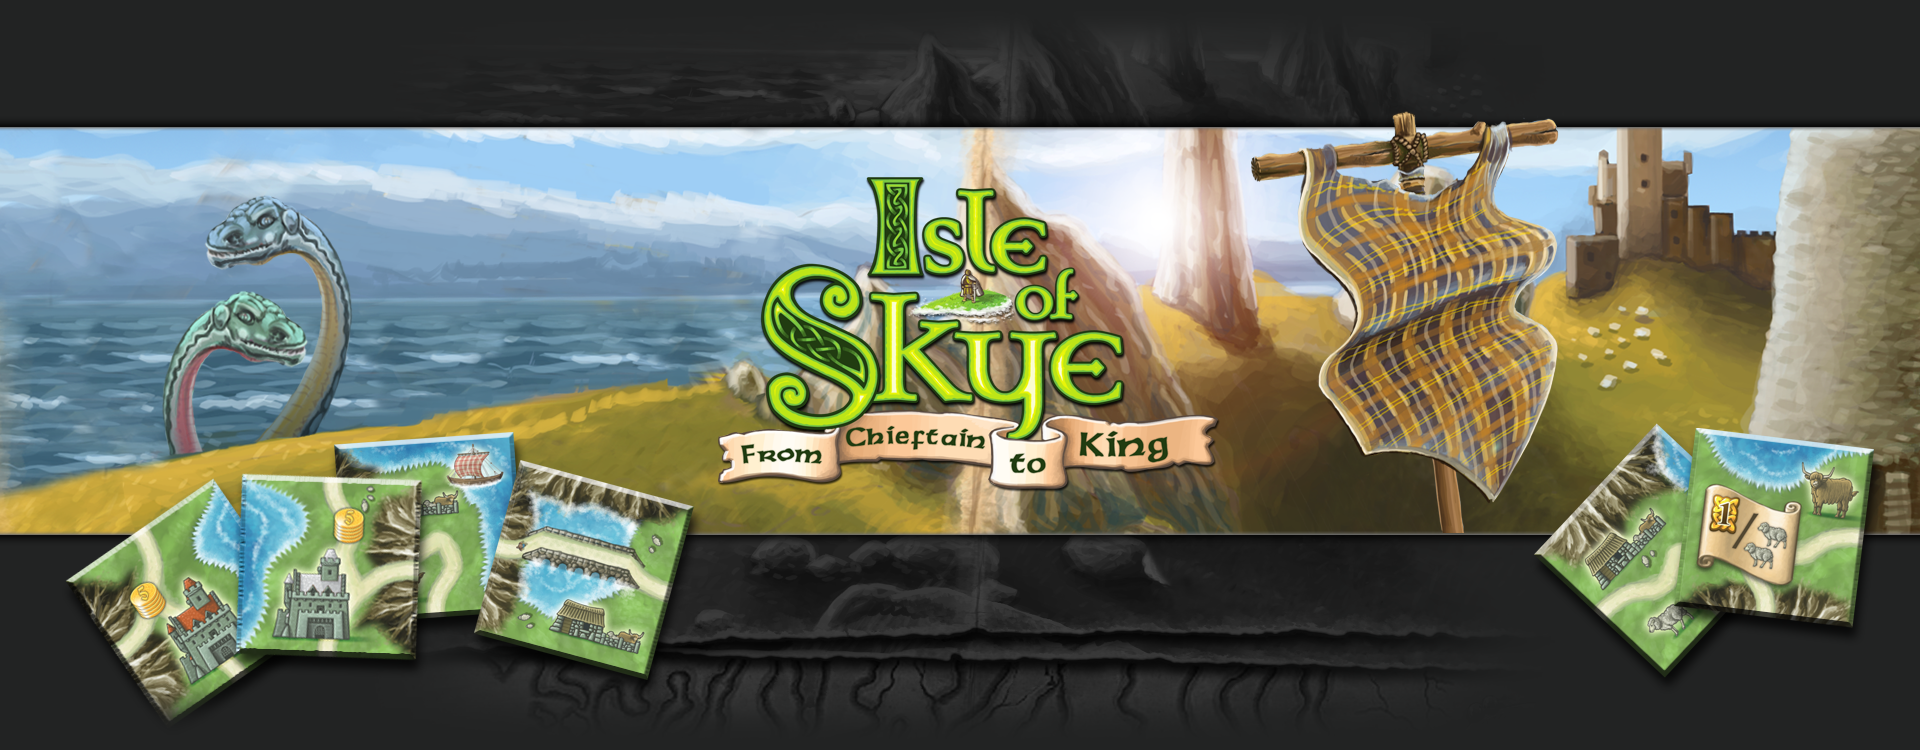 Isle of Skye header image (5 player family strategy game)